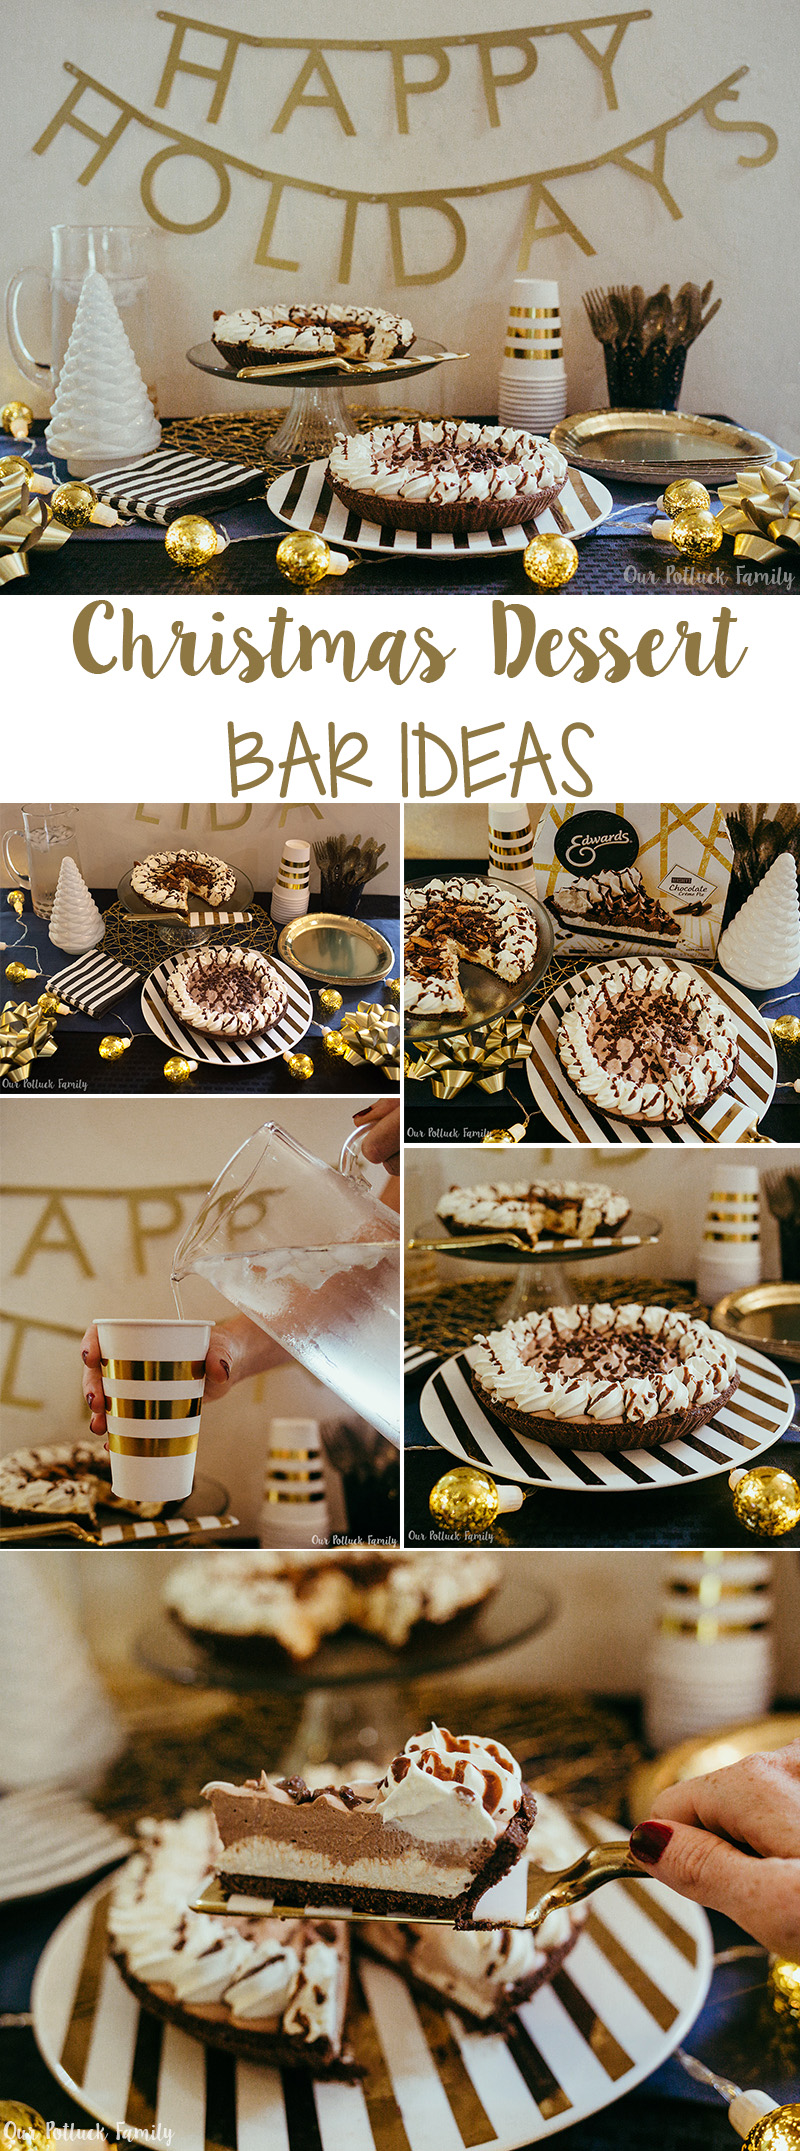 Christmas Dessert Bar Ideas